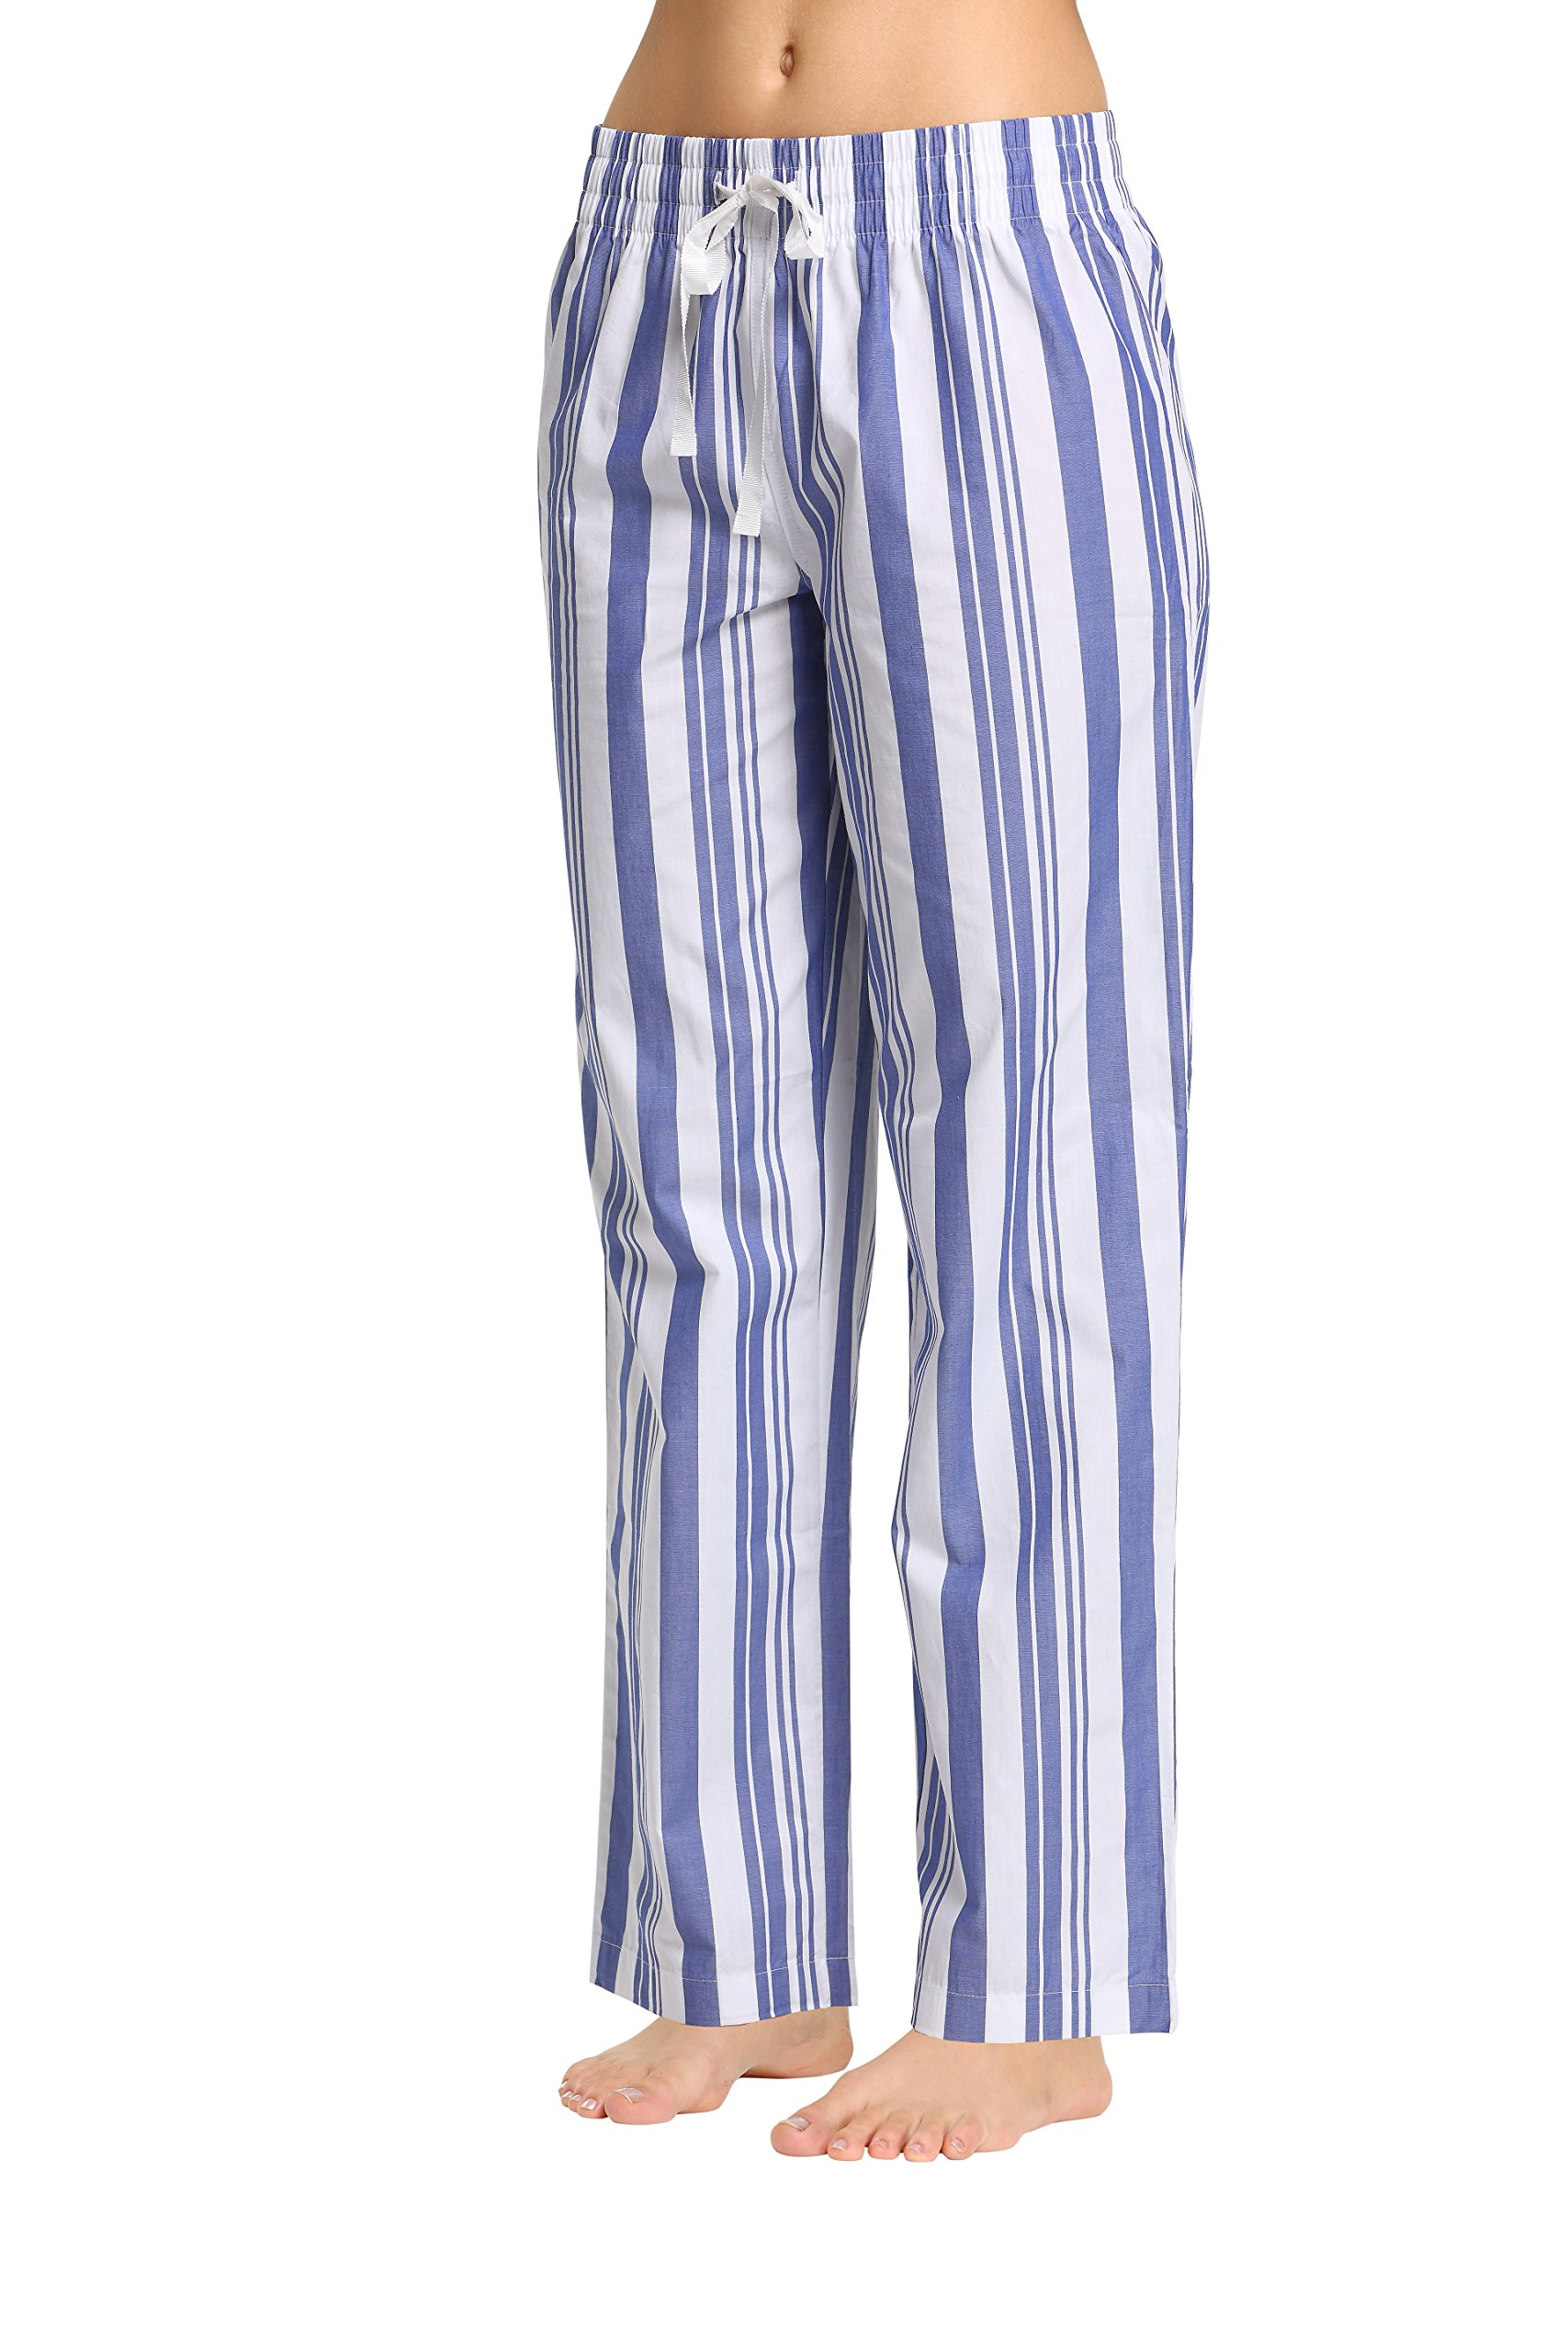 CYZ Women's 100% Cotton Woven Sleep Pajama Pants-IndigoStripe-S